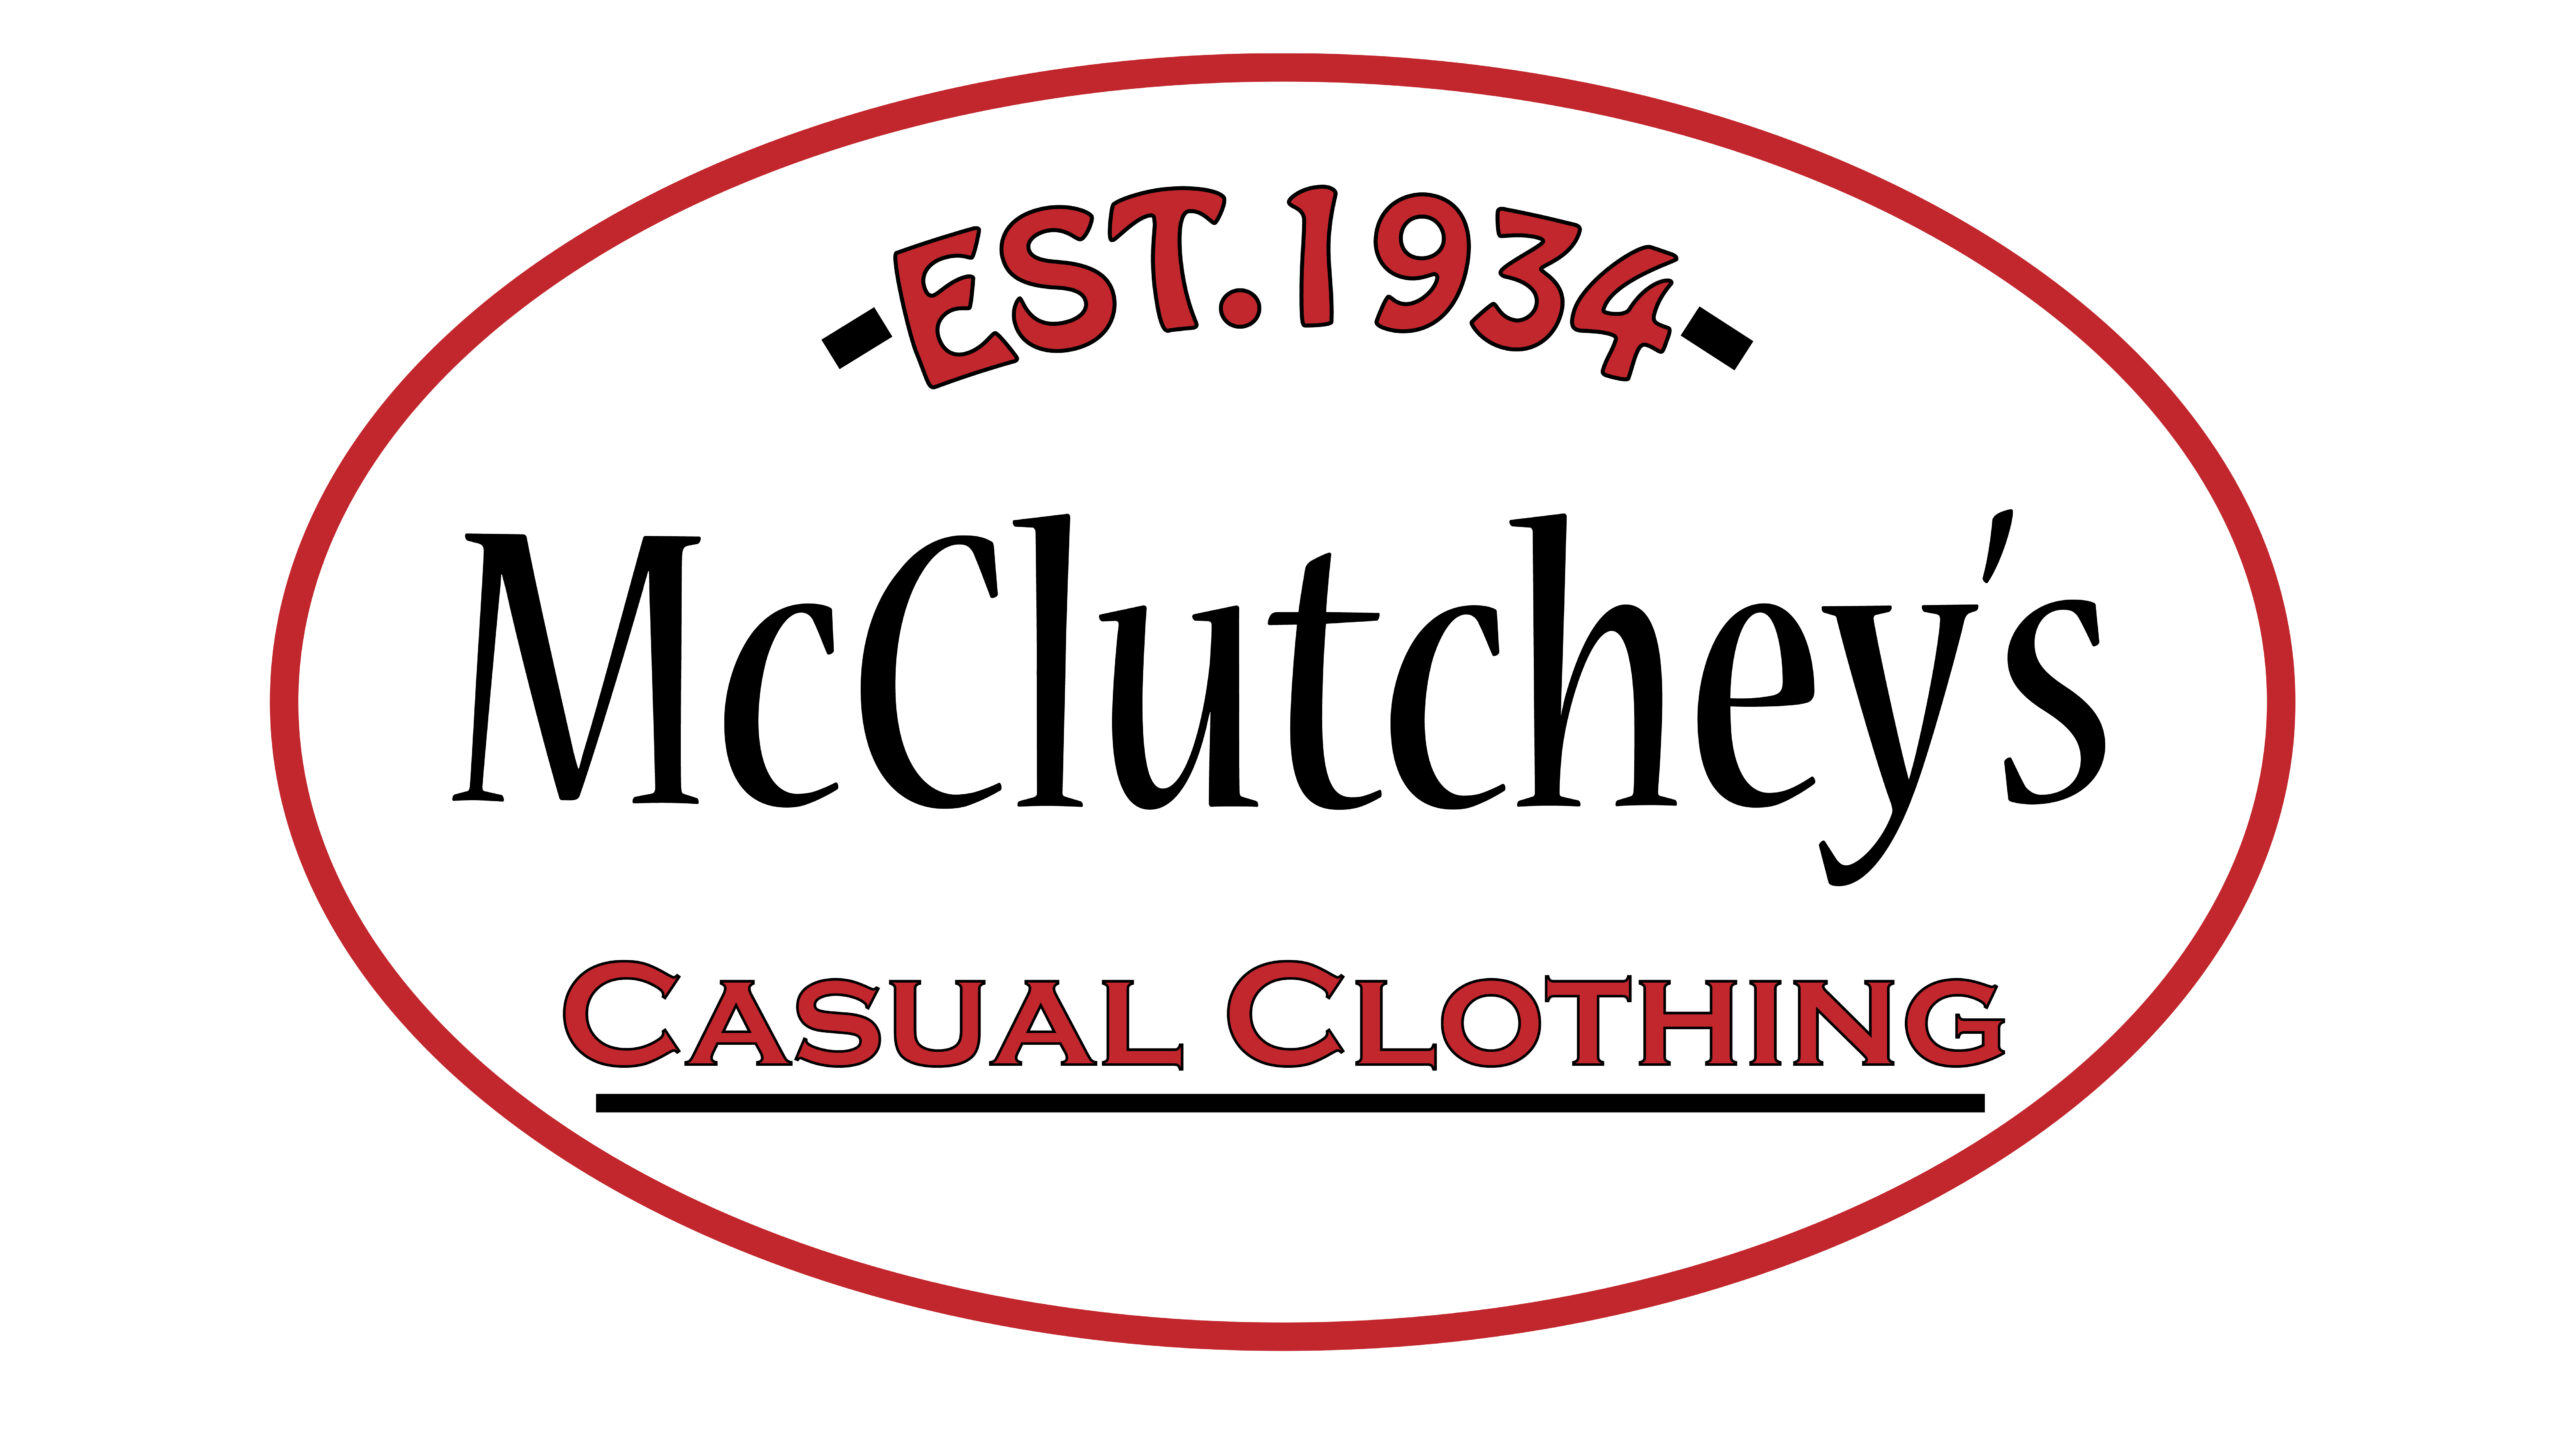 Quality Women's Clothing